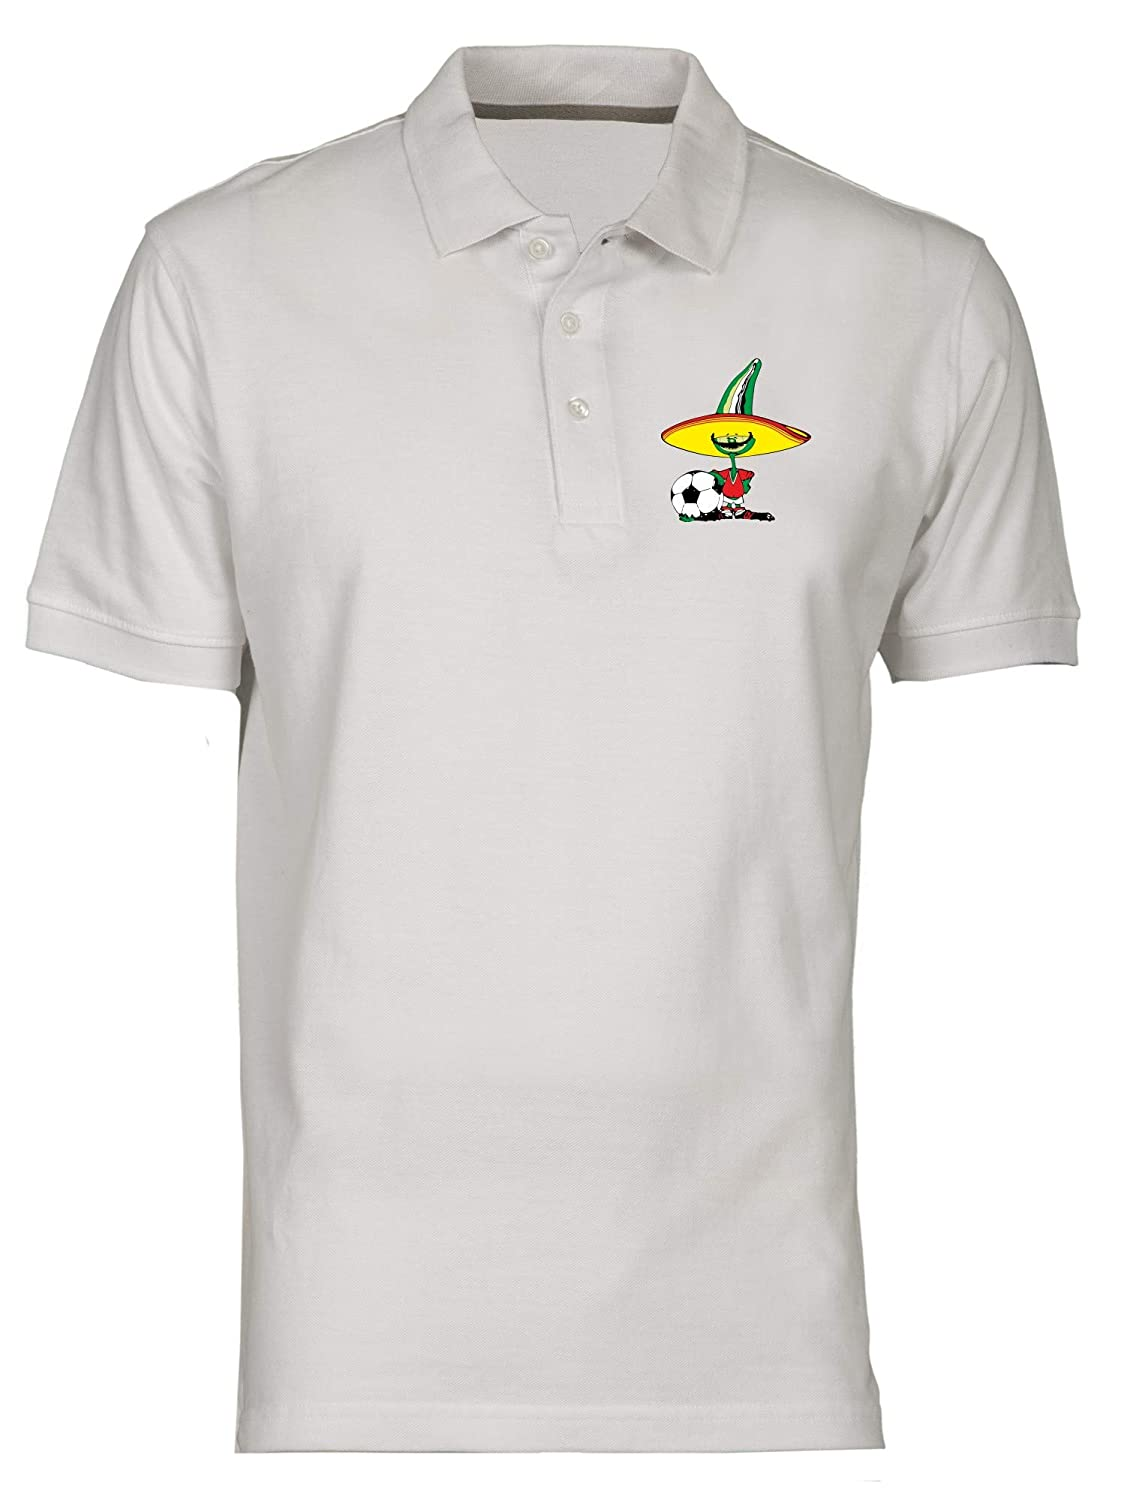 Polo por Hombre Blanco TM0225 Pique Mexico 86 Flag: Amazon.es ...